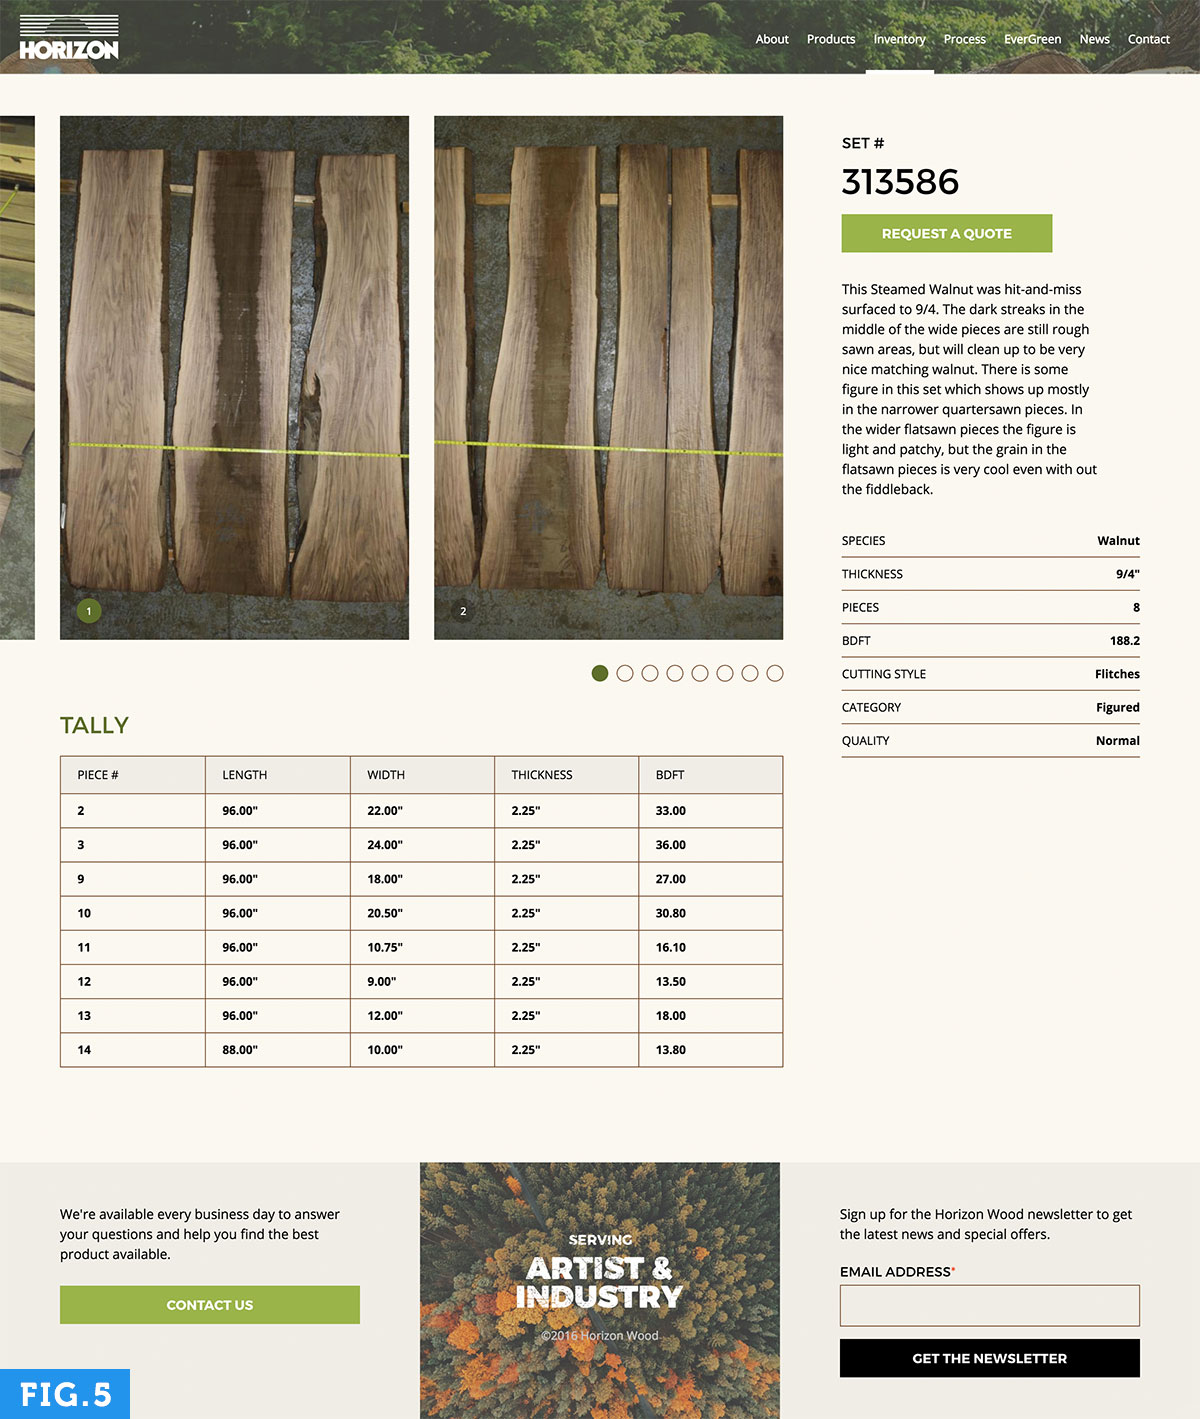 New product page design